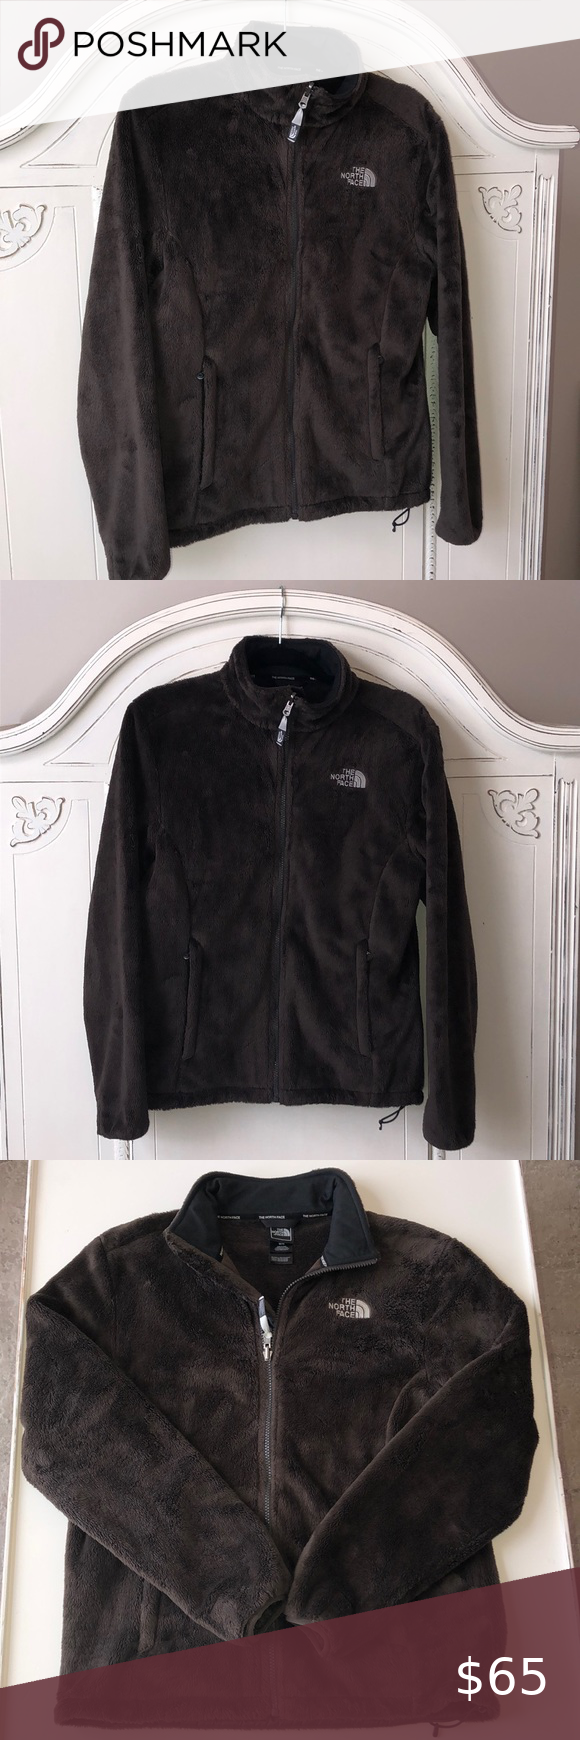 Chocolate Brown North Face Jacket Brown North Face Jacket North Face Jacket Clothes Design [ 1740 x 580 Pixel ]